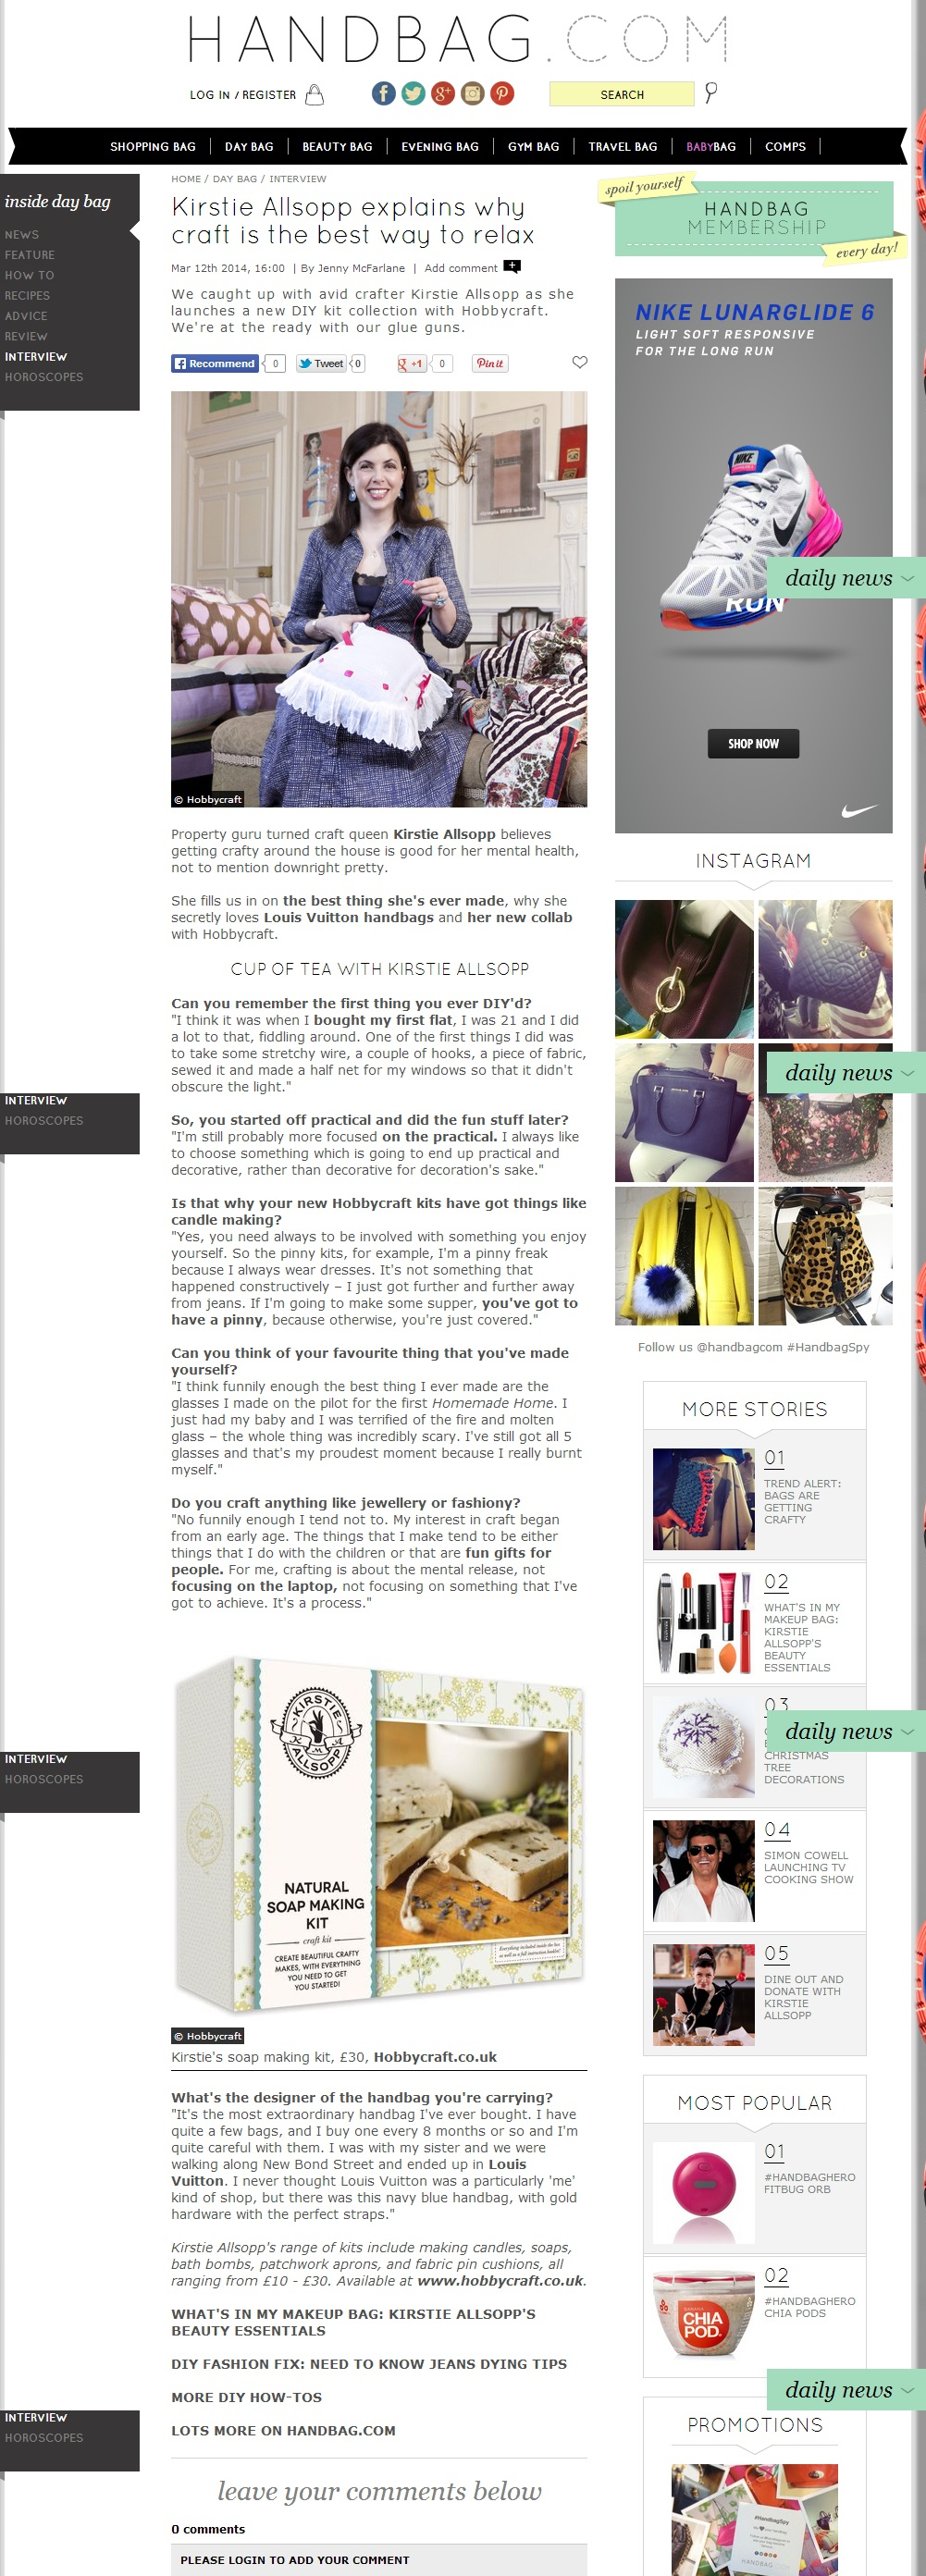 screencapture-www-handbag-com-day-bag-interviews-a557137-kirstie-allsopp-explains-why-craft-is-the-best-way-to-relax-html